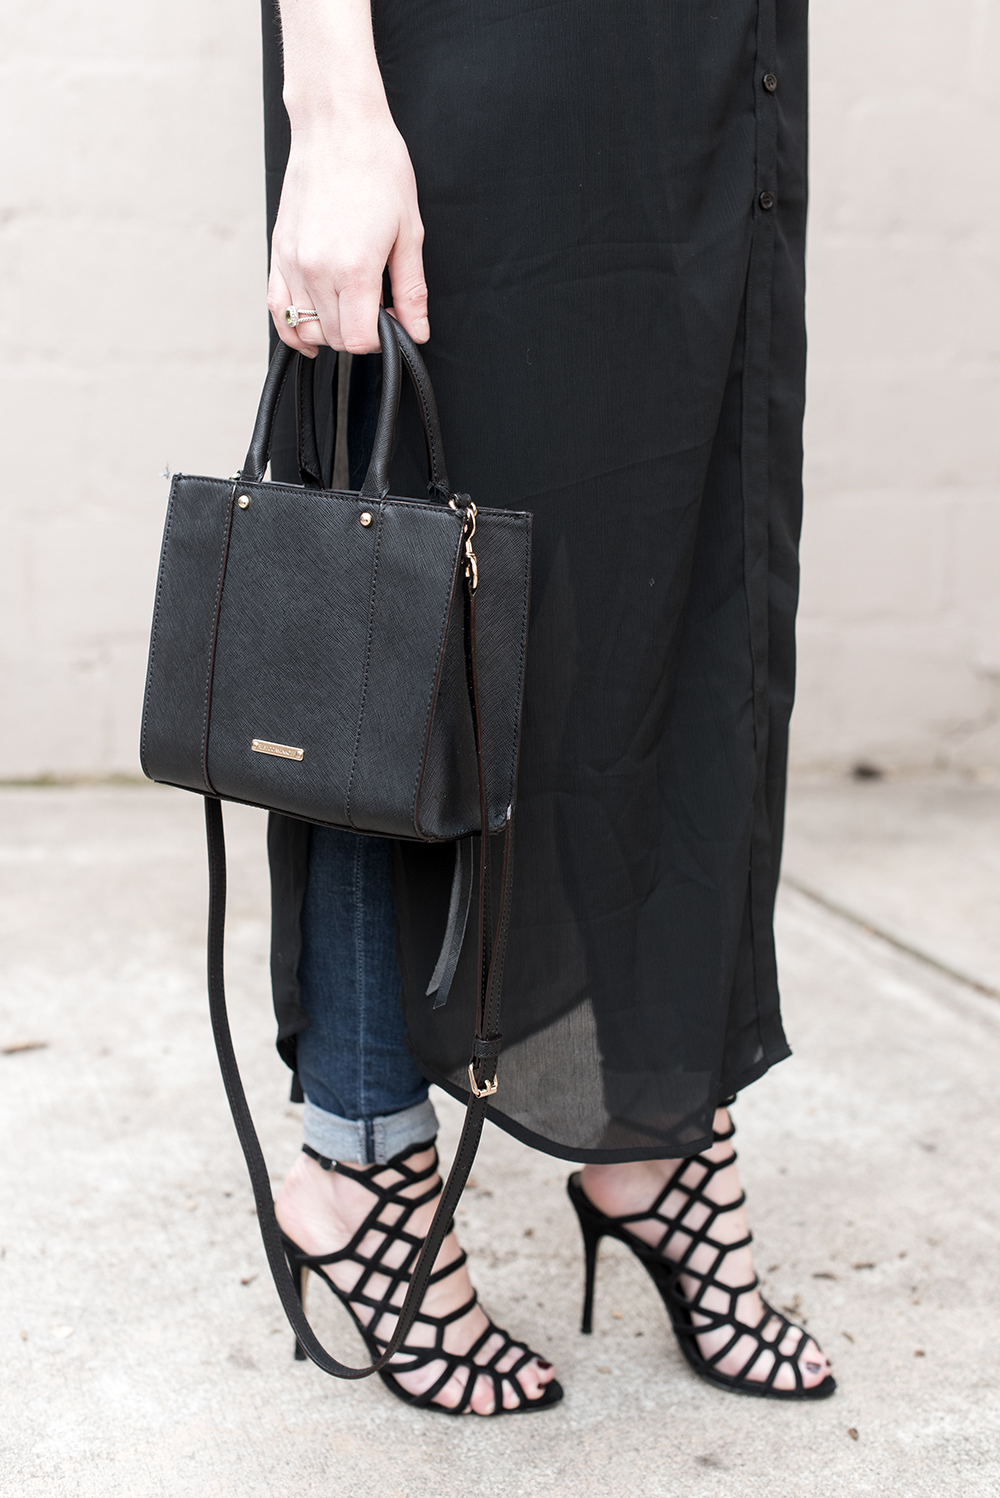 Mini Minkoff Bag, Black Cage Heels